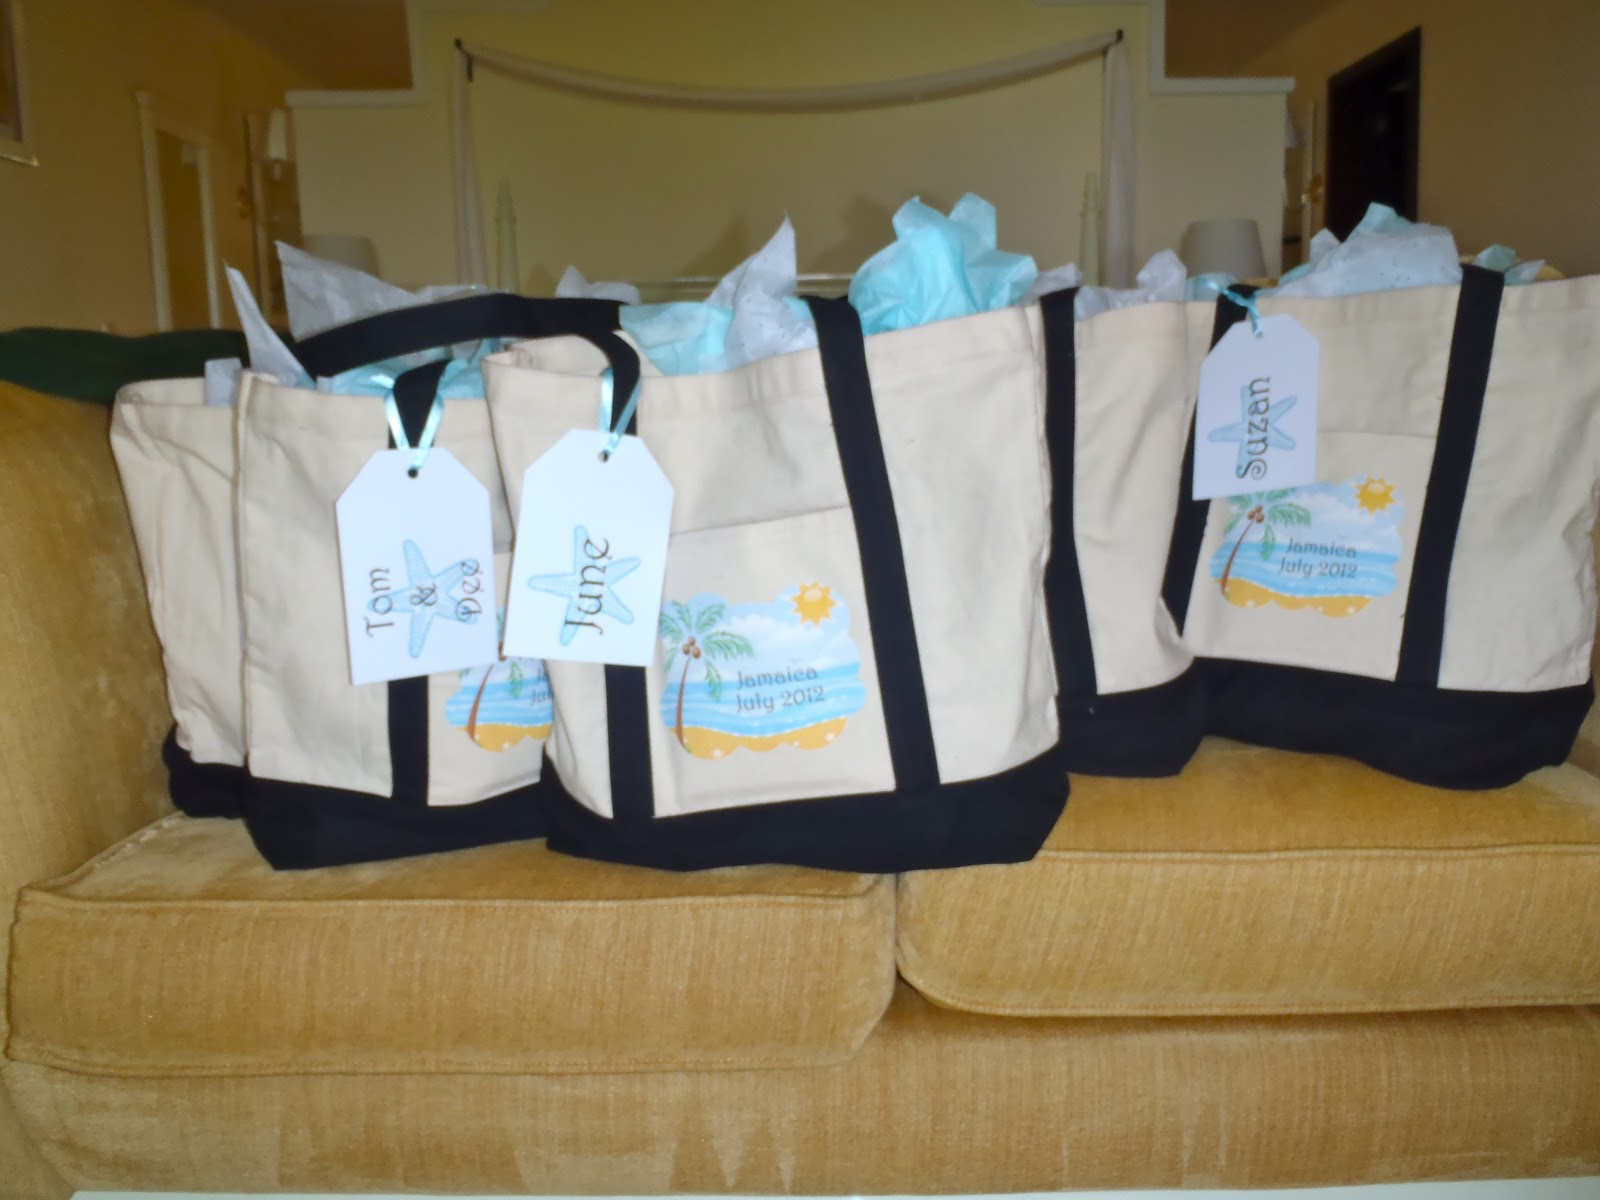 Diy Destination Wedding Gift Bags : Connoisseur of Creativity: DIY Destination Wedding Welcome Bags